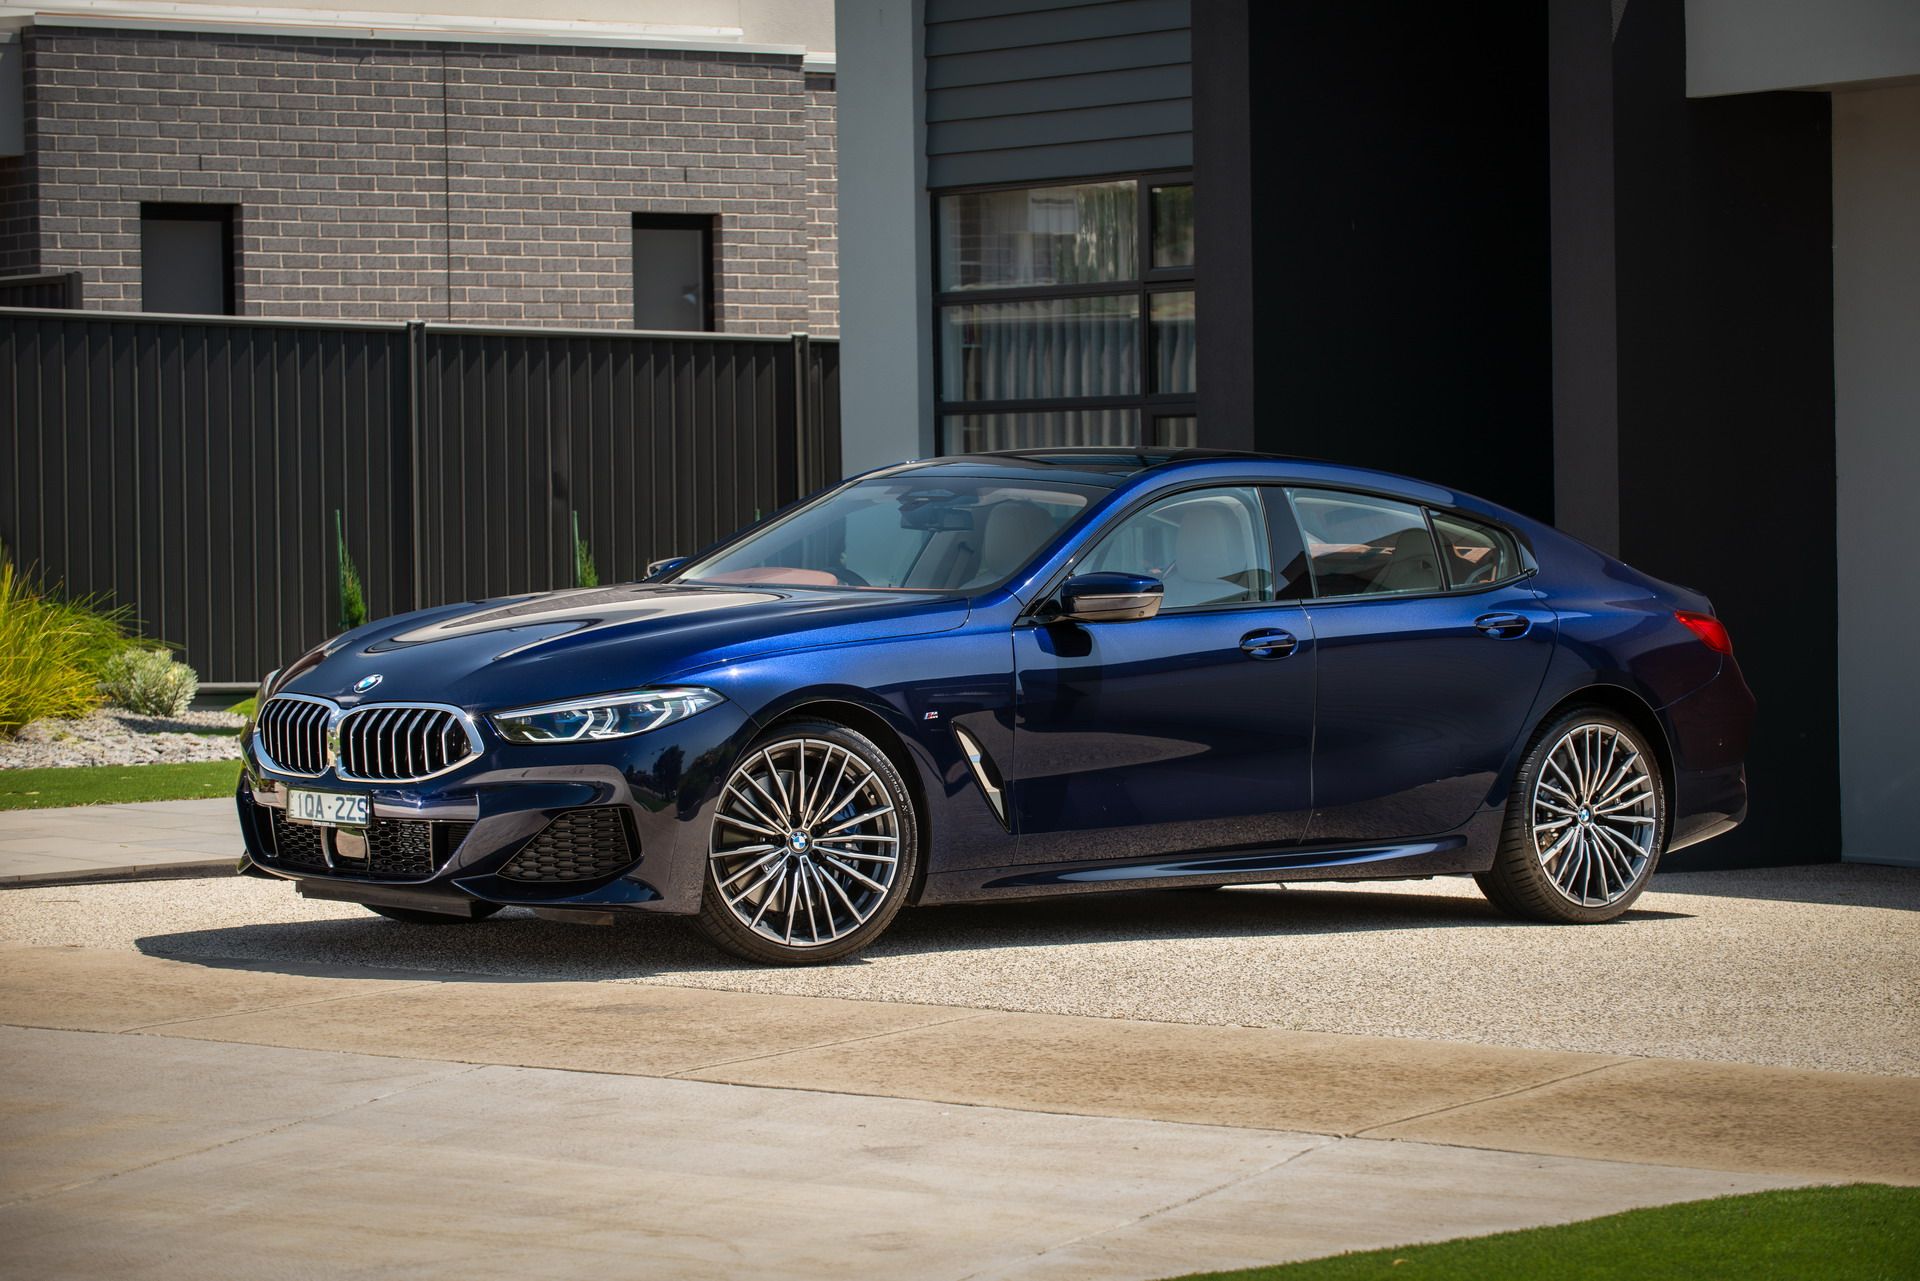 The All New BMW 840i AU Model 8